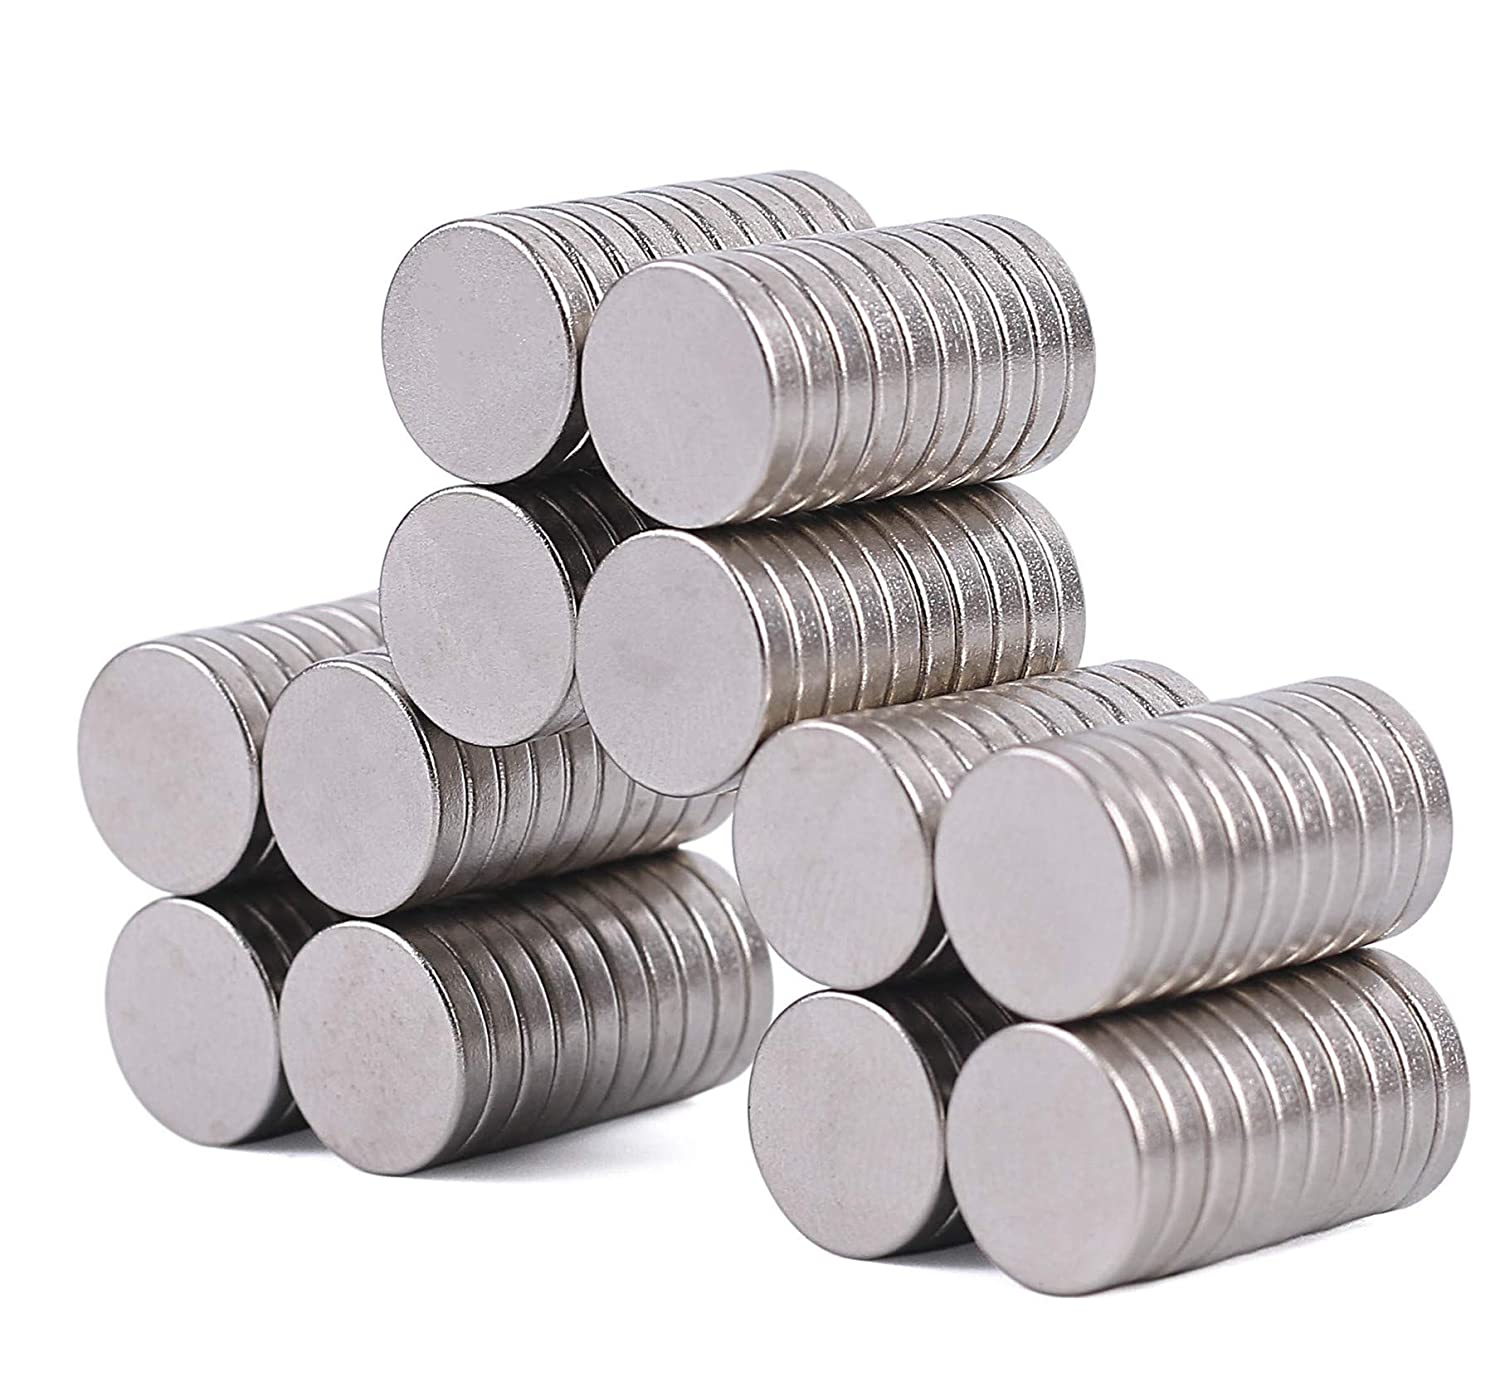 120 Fridge Magnets Neodymium Cylinder Fridge Magnets,10mm dia x 2mm thick, Rare Earth Disc Magnets Strong Magnets Fridge Door Whiteboard Magnetic Office Magnets, Durable Magnets Jineelrit